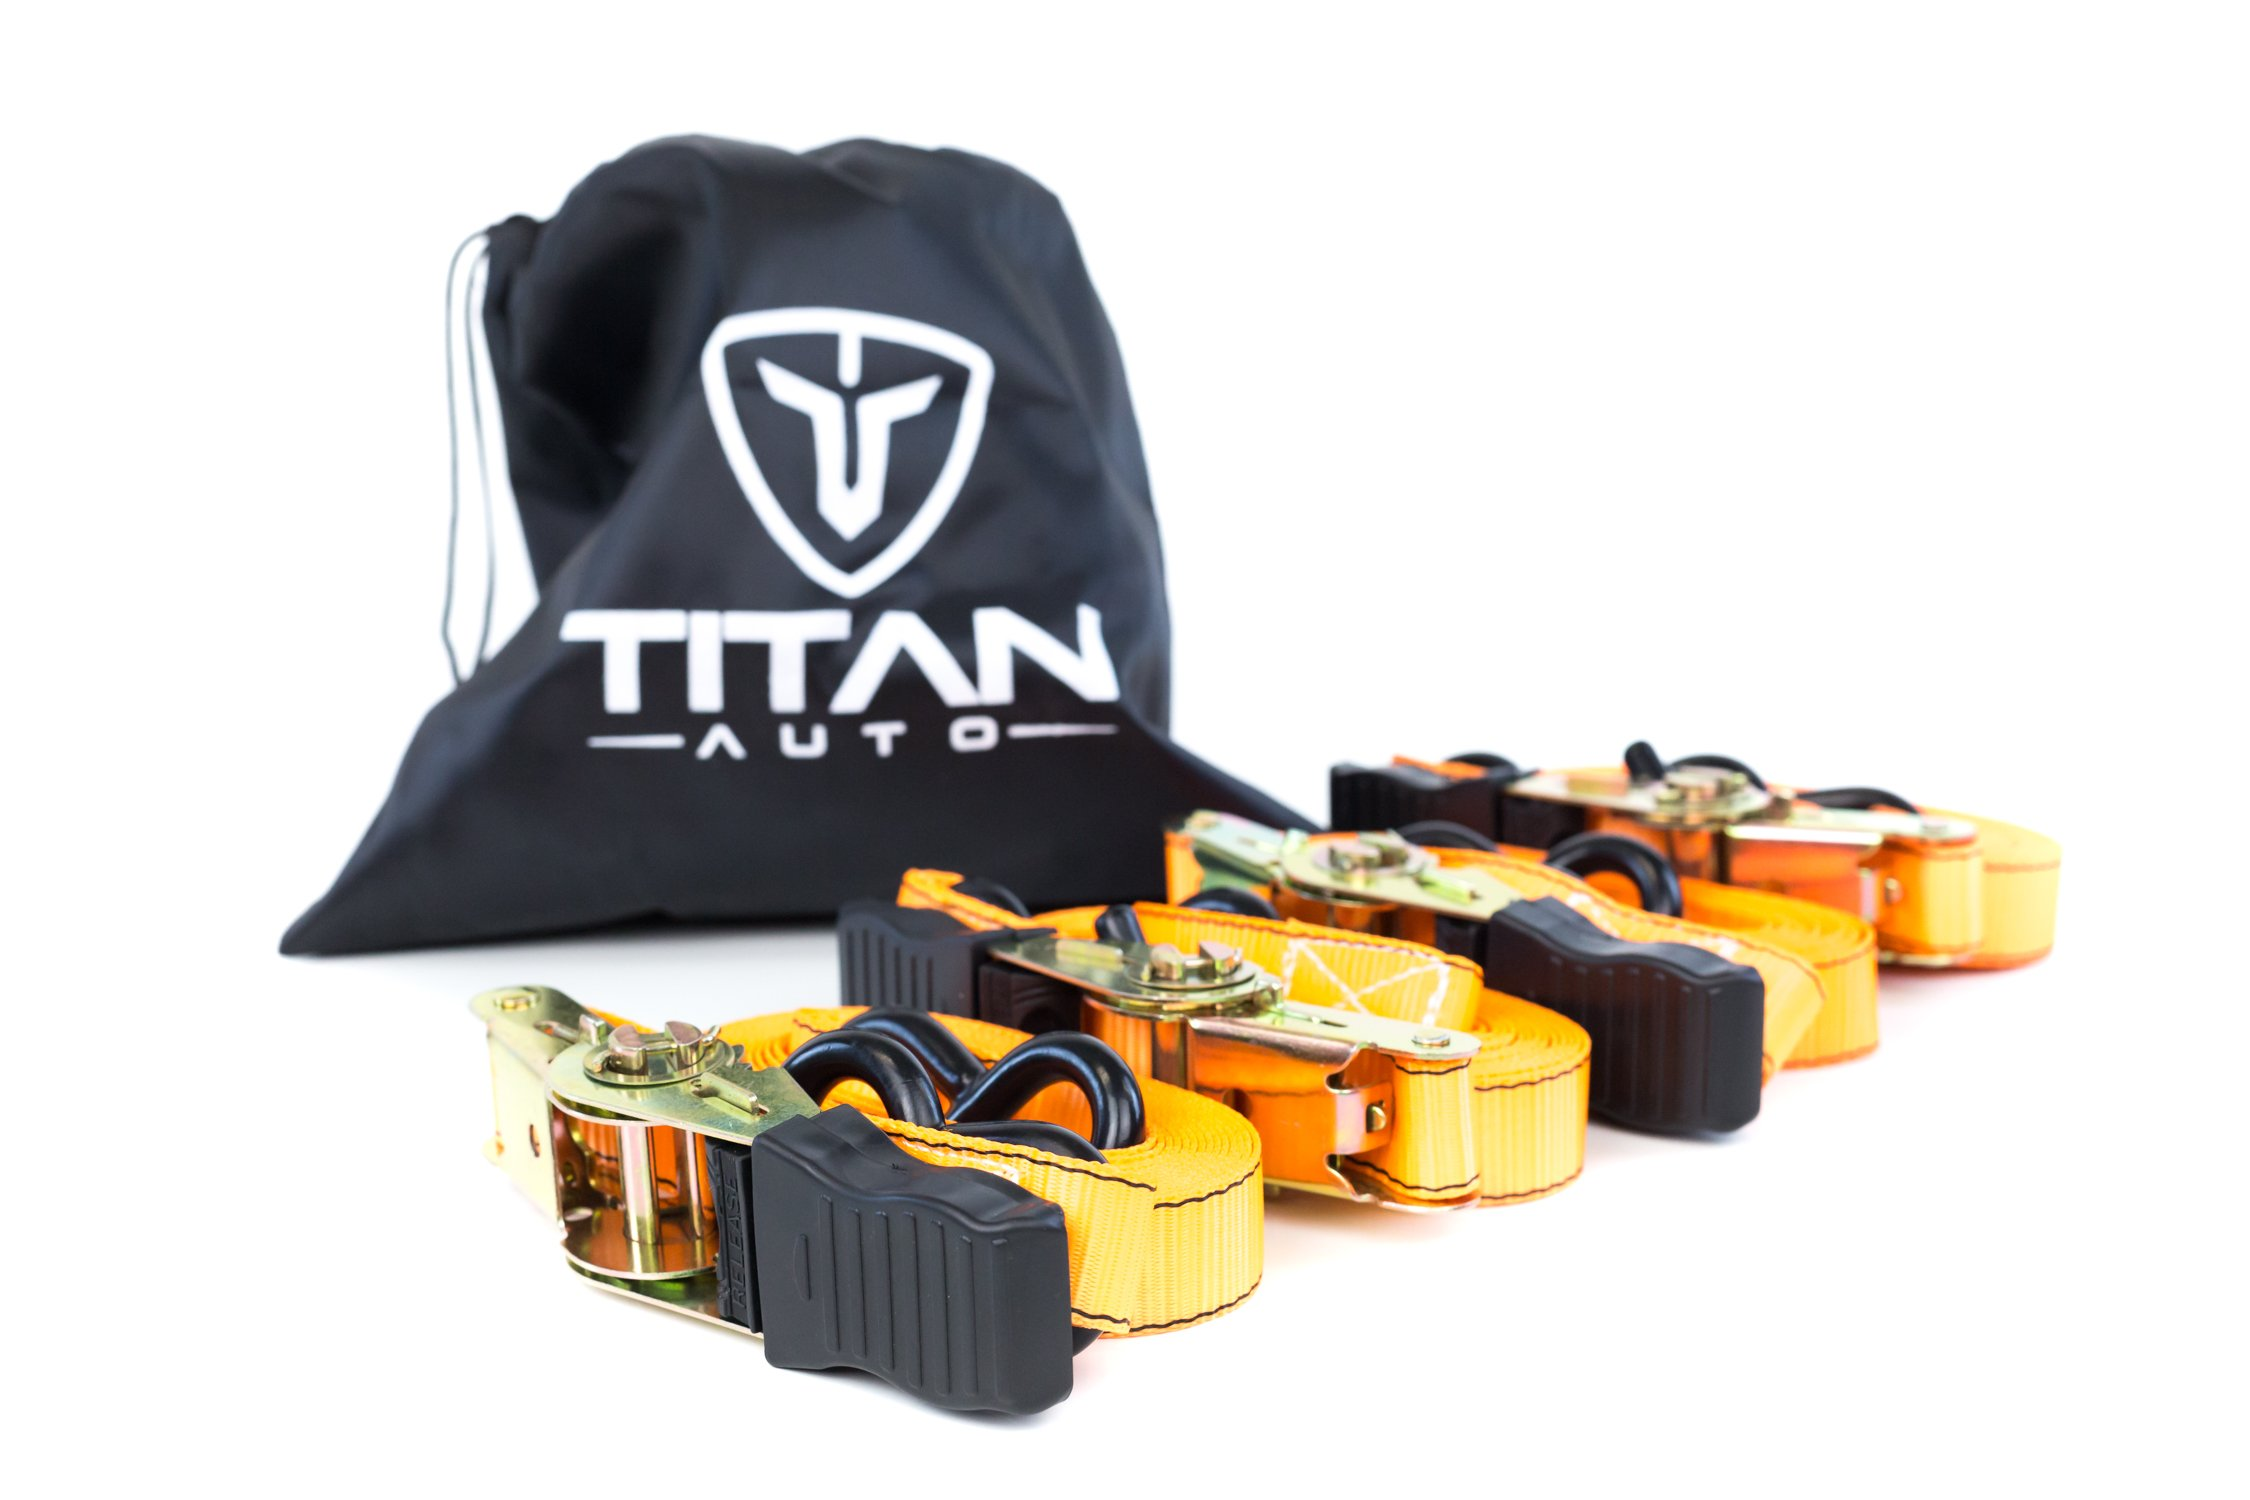 Ratcheting Tie Down Straps | Premium Load Straps with Plastic-Coated S Hooks for Cargo, Gear, Bikes & More | Bonus Storage Bag Included | Titan Auto 800 LB Working Load Limit High Tenacity Polyester